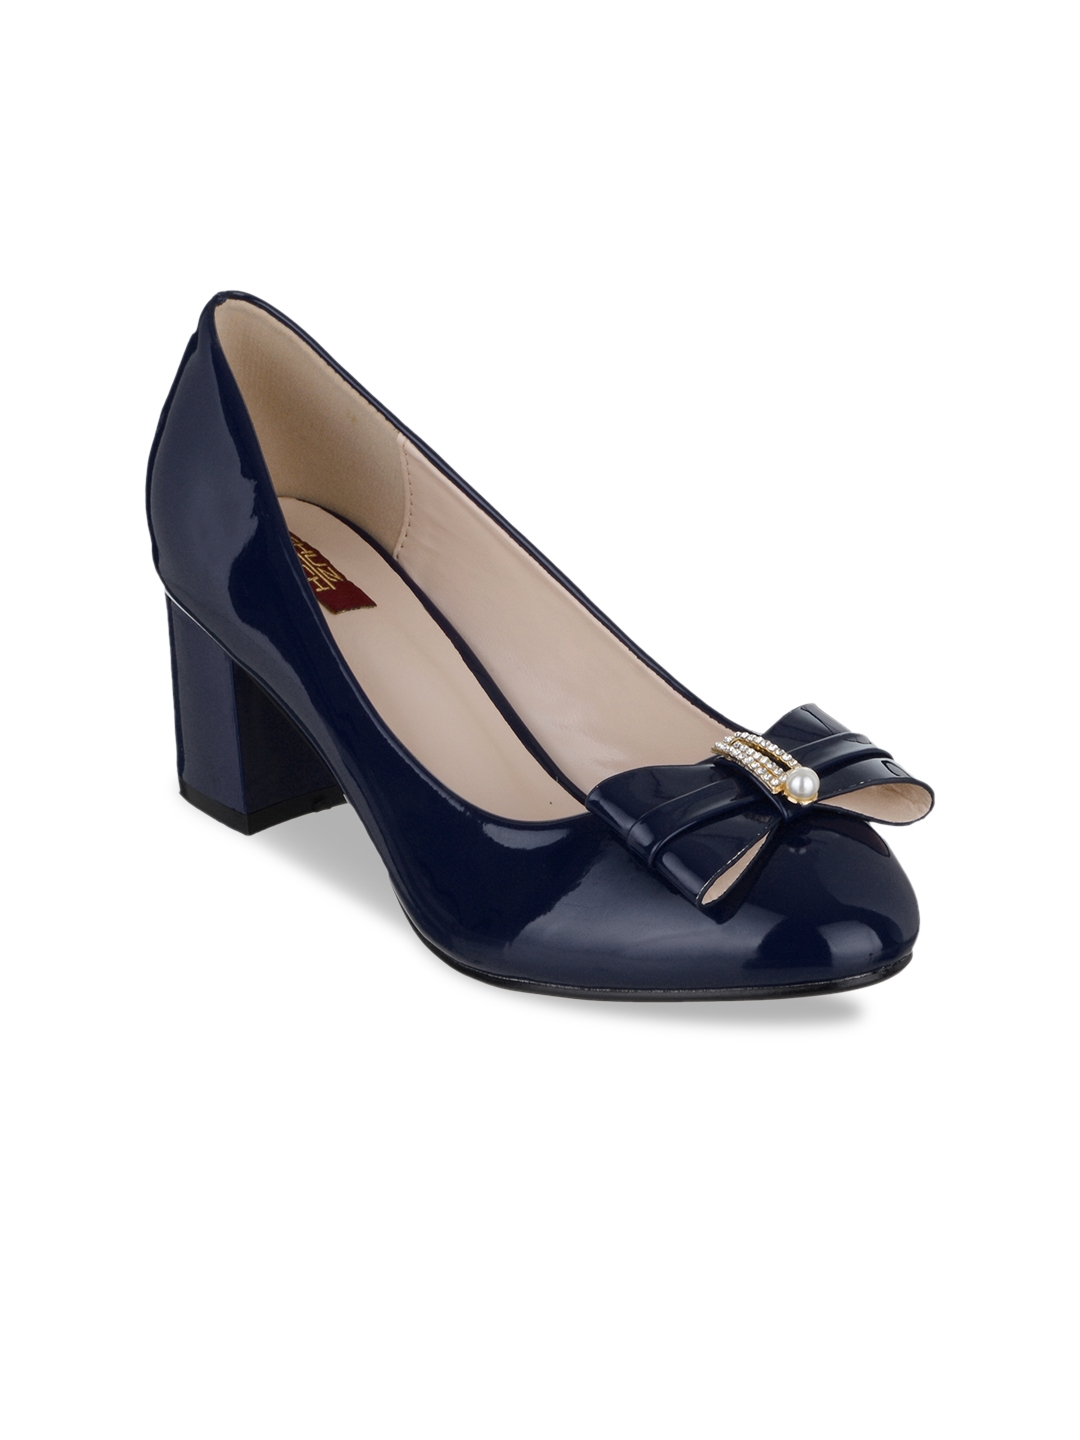 549651bcd42 Buy SHUZ TOUCH Women Navy Blue Solid Pumps - Heels for Women 6545973 ...